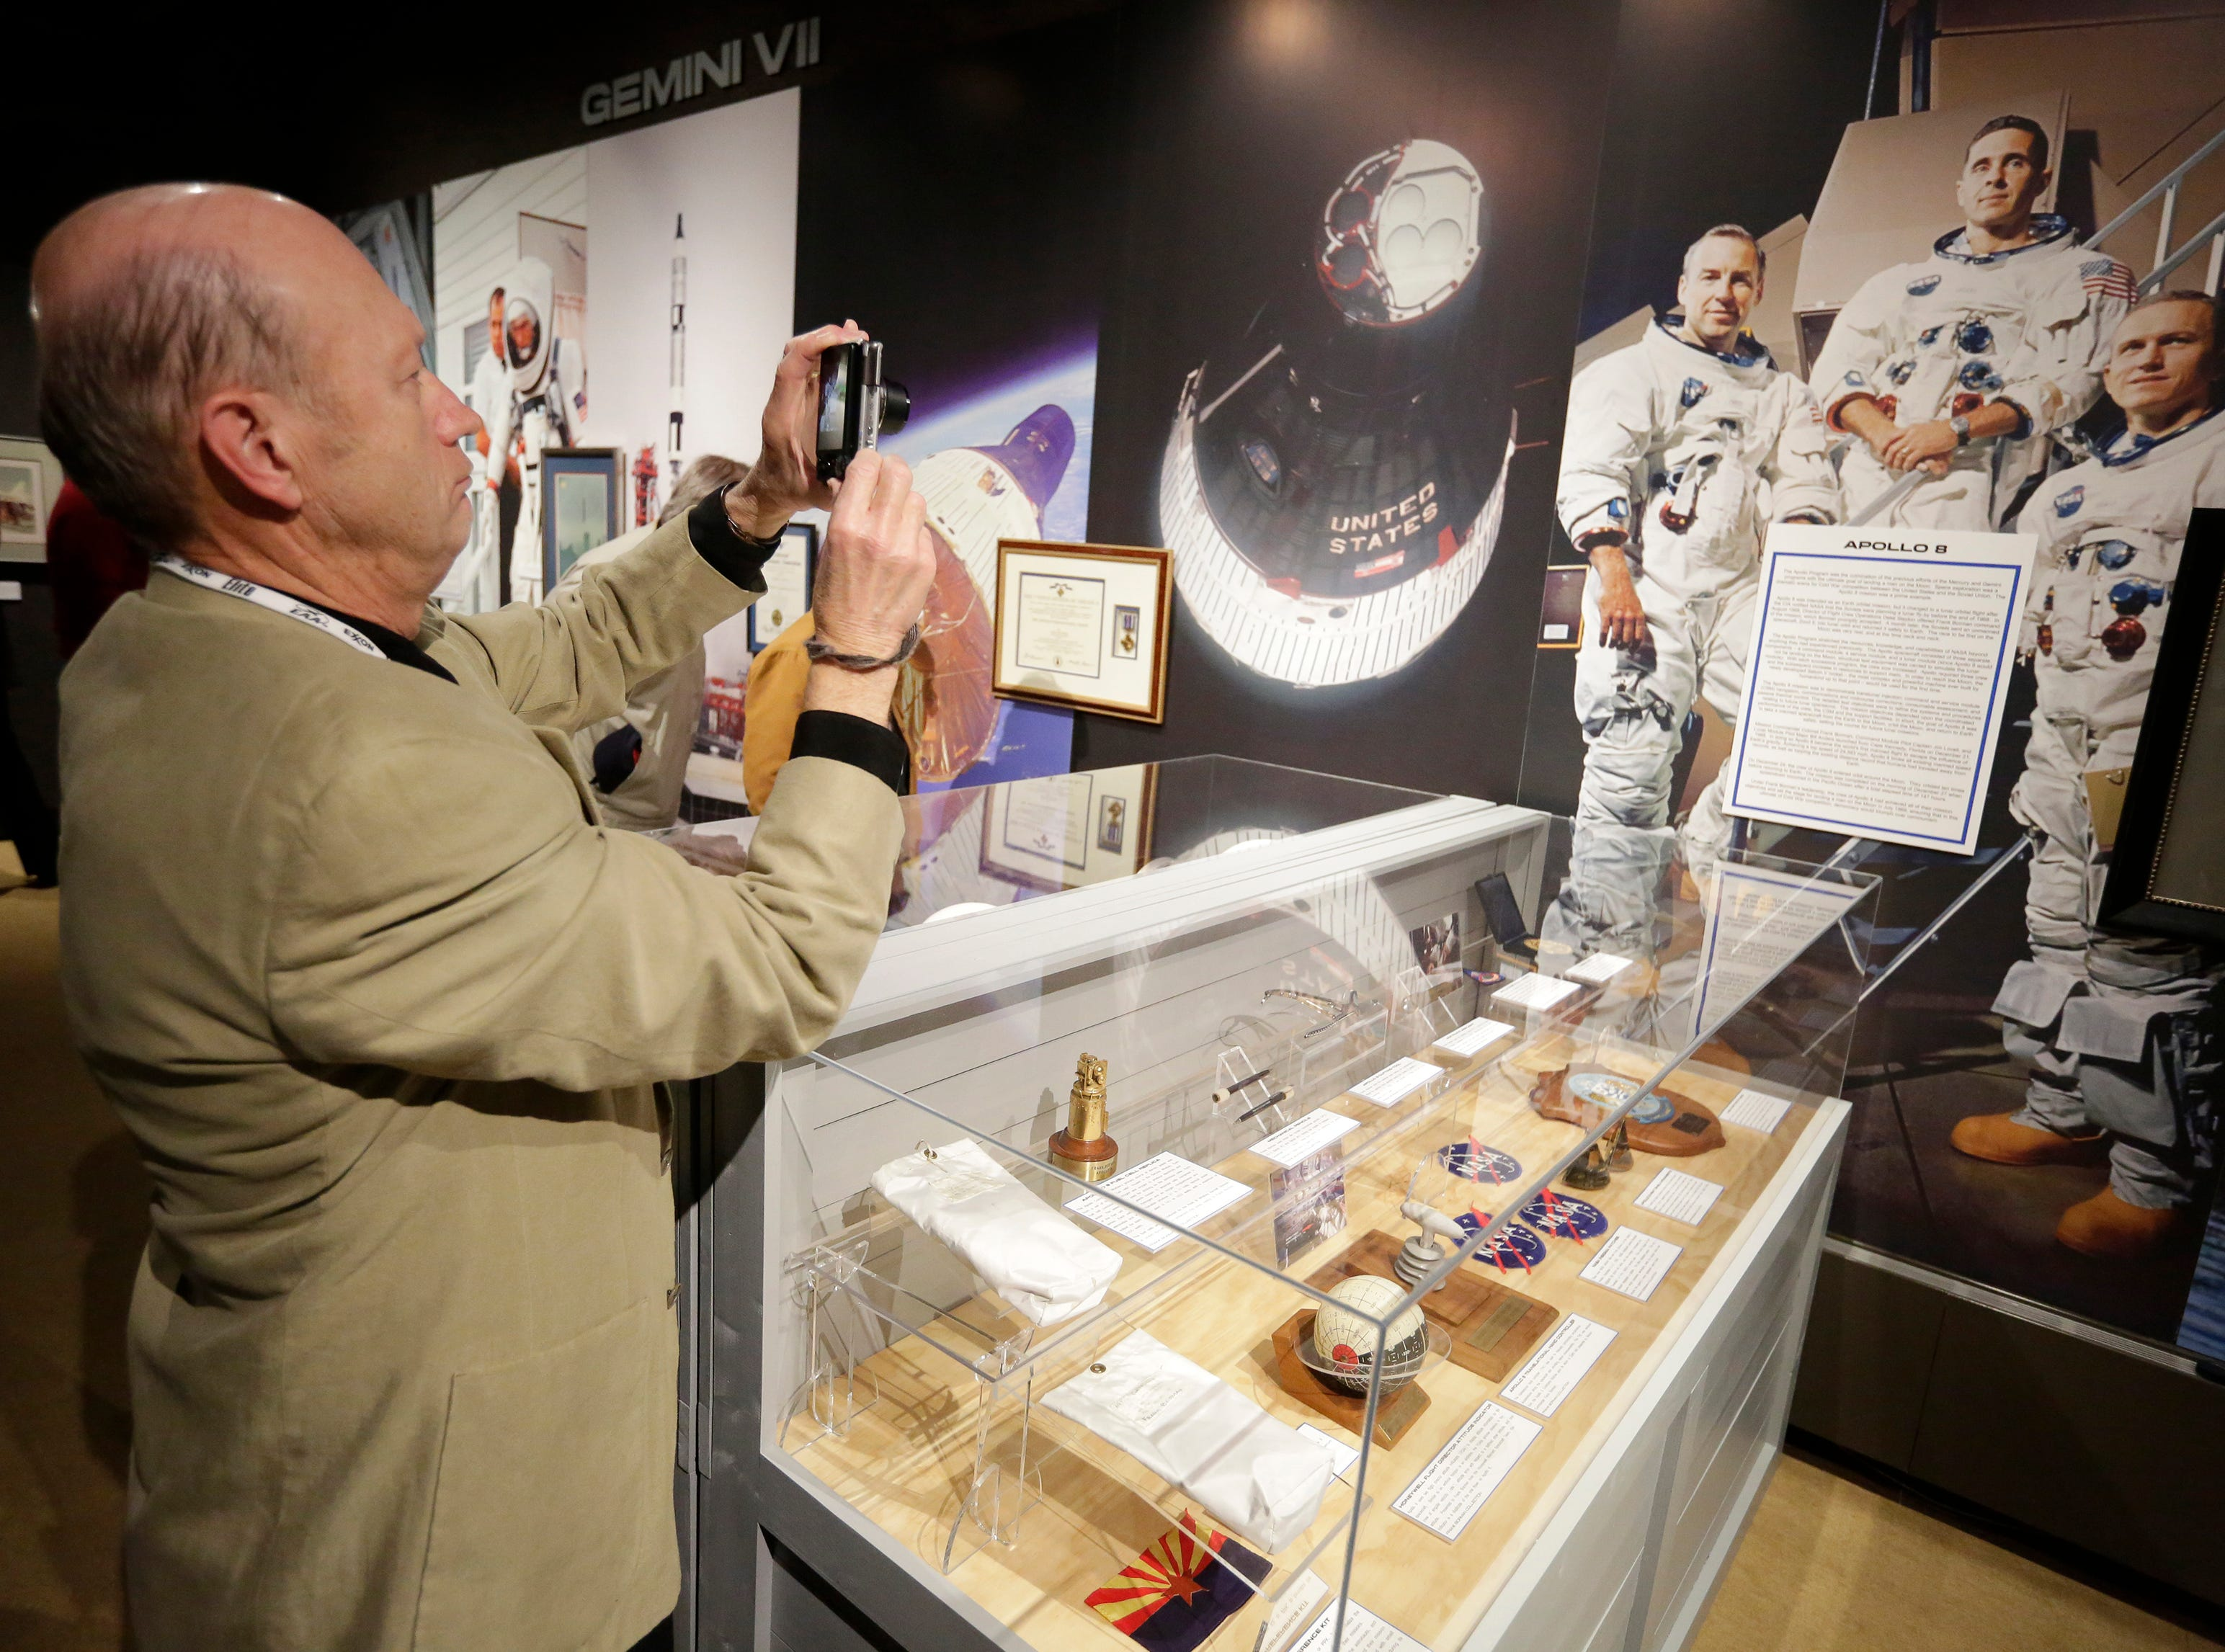 """Dave Weiman takes a photo of the astronauts at the exhibit opening.  The EAA Aviation Museum in Oshkosh, Wis. has opened """"The Borman Collection: An EAA Member's Space Odyssey,"""" an exhibit that features the personal archives and memorabilia of astronaut Frank Borman, who was on the leading edge of America's space program through the 1960s. The new exhibit was formally opened with a ribbon cutting by Borman on Friday, December 7, 2018.Joe Sienkiewicz/USA Today NETWORK-Wisconsin"""